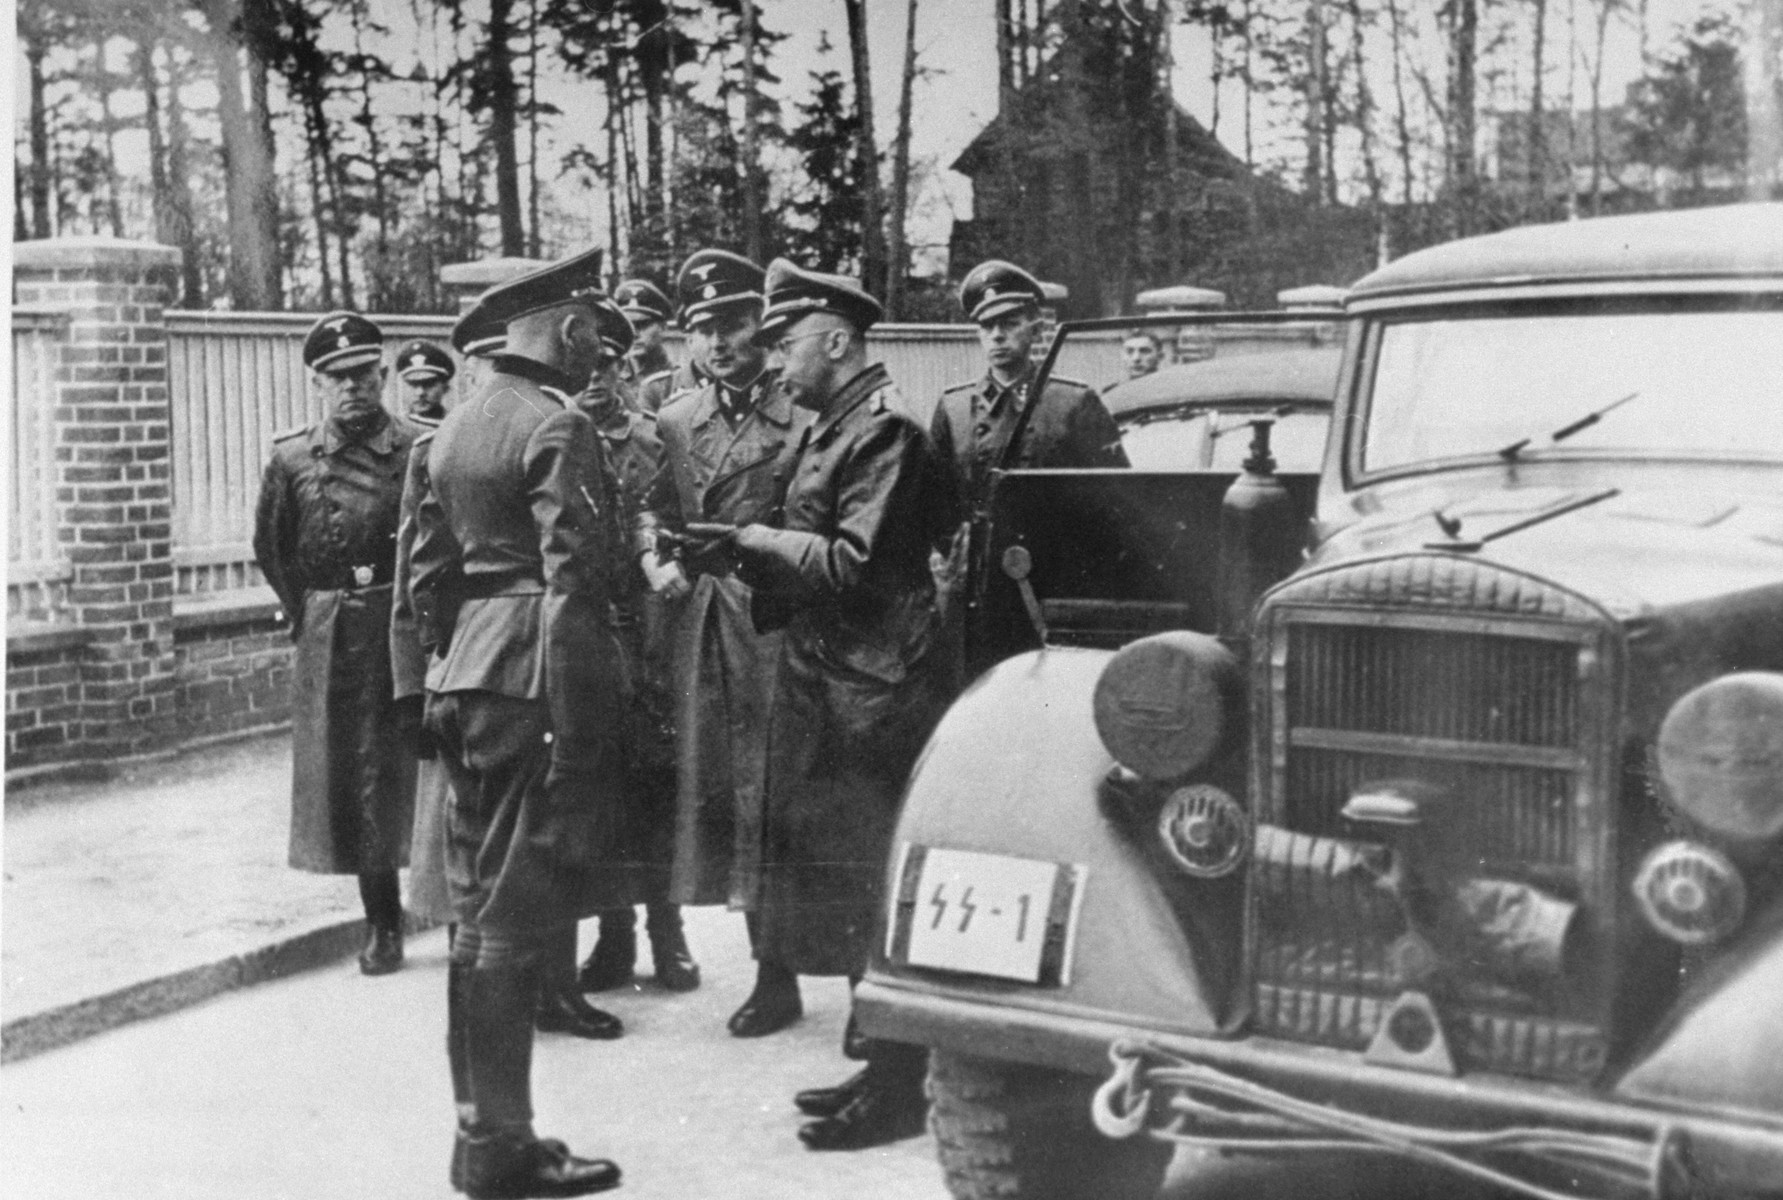 Reichsfuehrer-SS Heinrich Himmler greets SS Sturmbannfuehrer and camp commandant Max Pauly during an official visit to Stutthof.